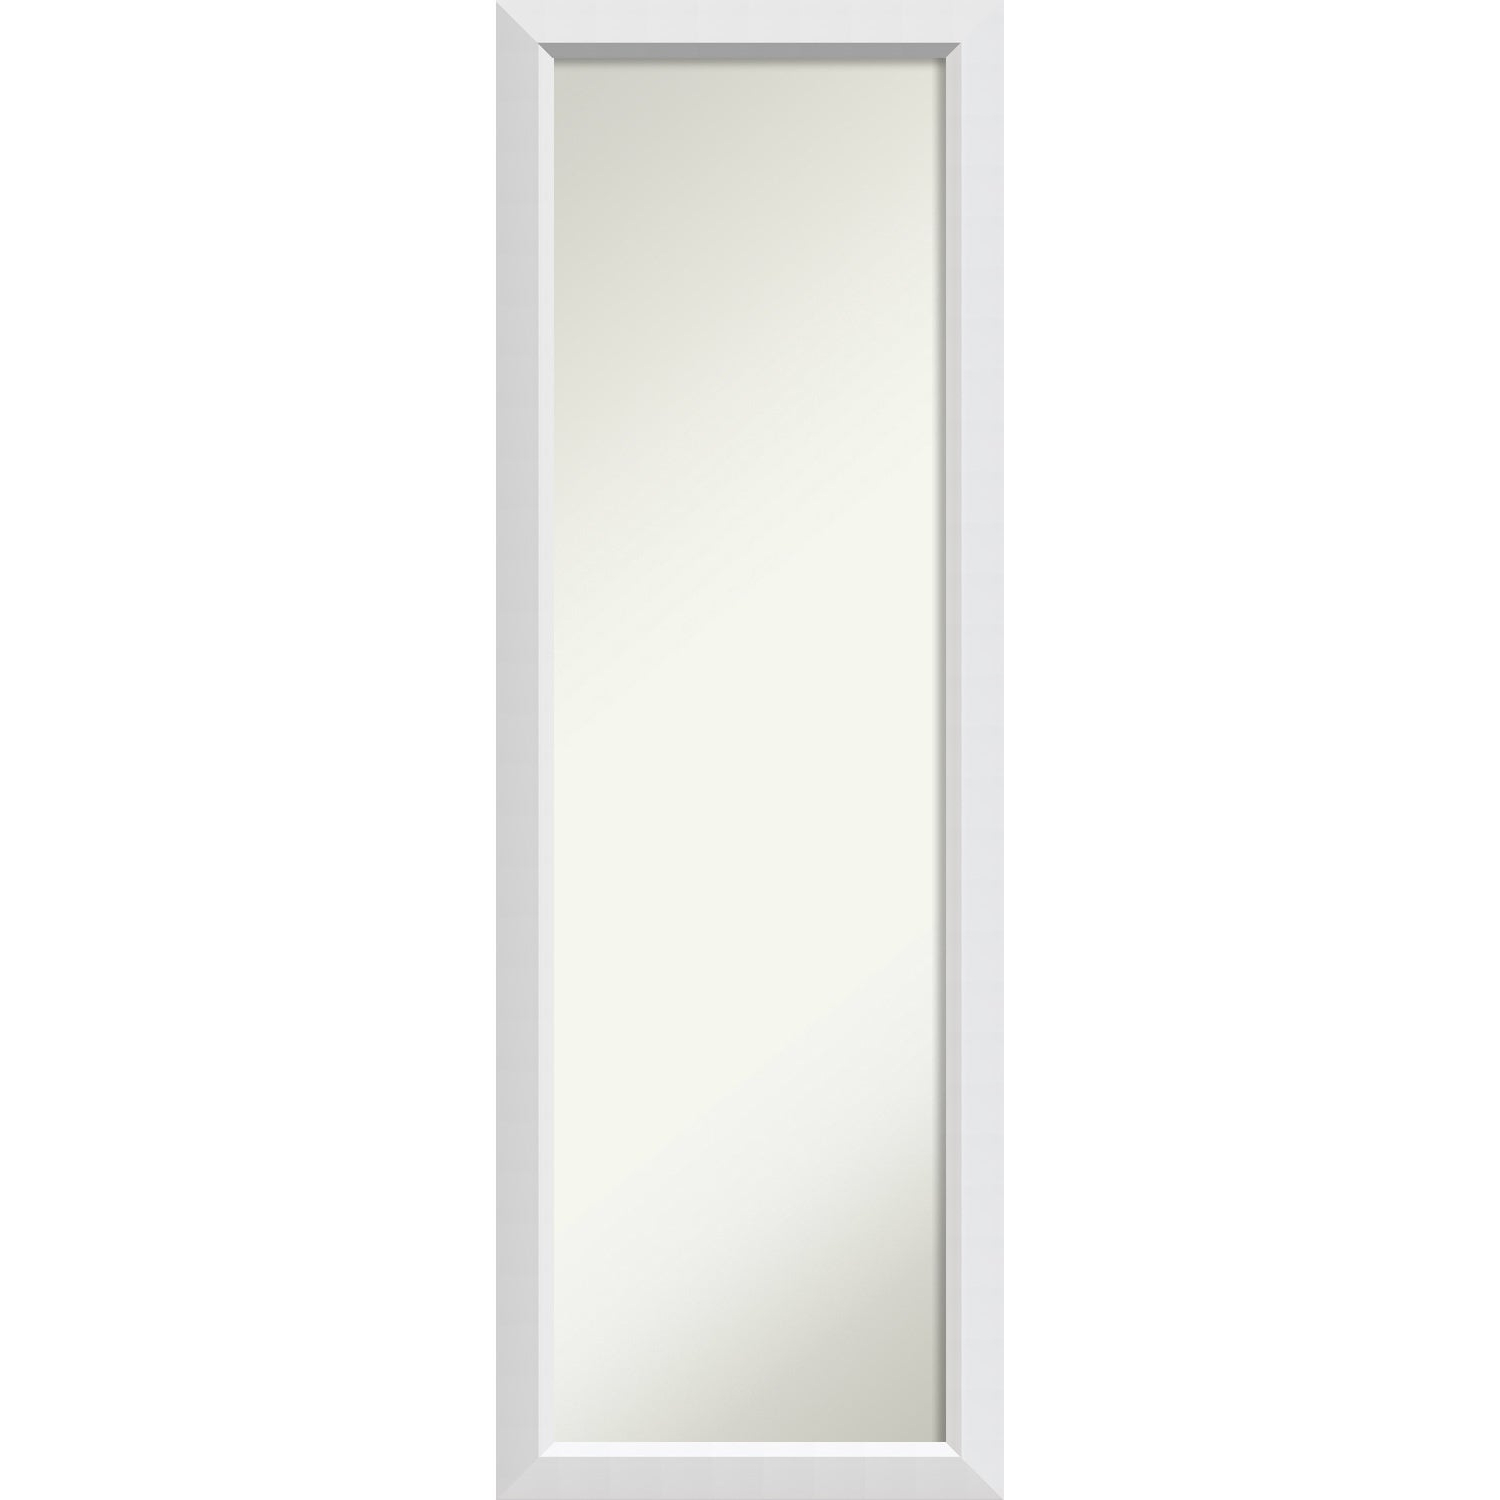 Most Current White Full Length Wall Mirrors Intended For On The Door Full Length Wall Mirror, Blanco White 18 X 52 Inch – 52 X 18 X (View 2 of 20)